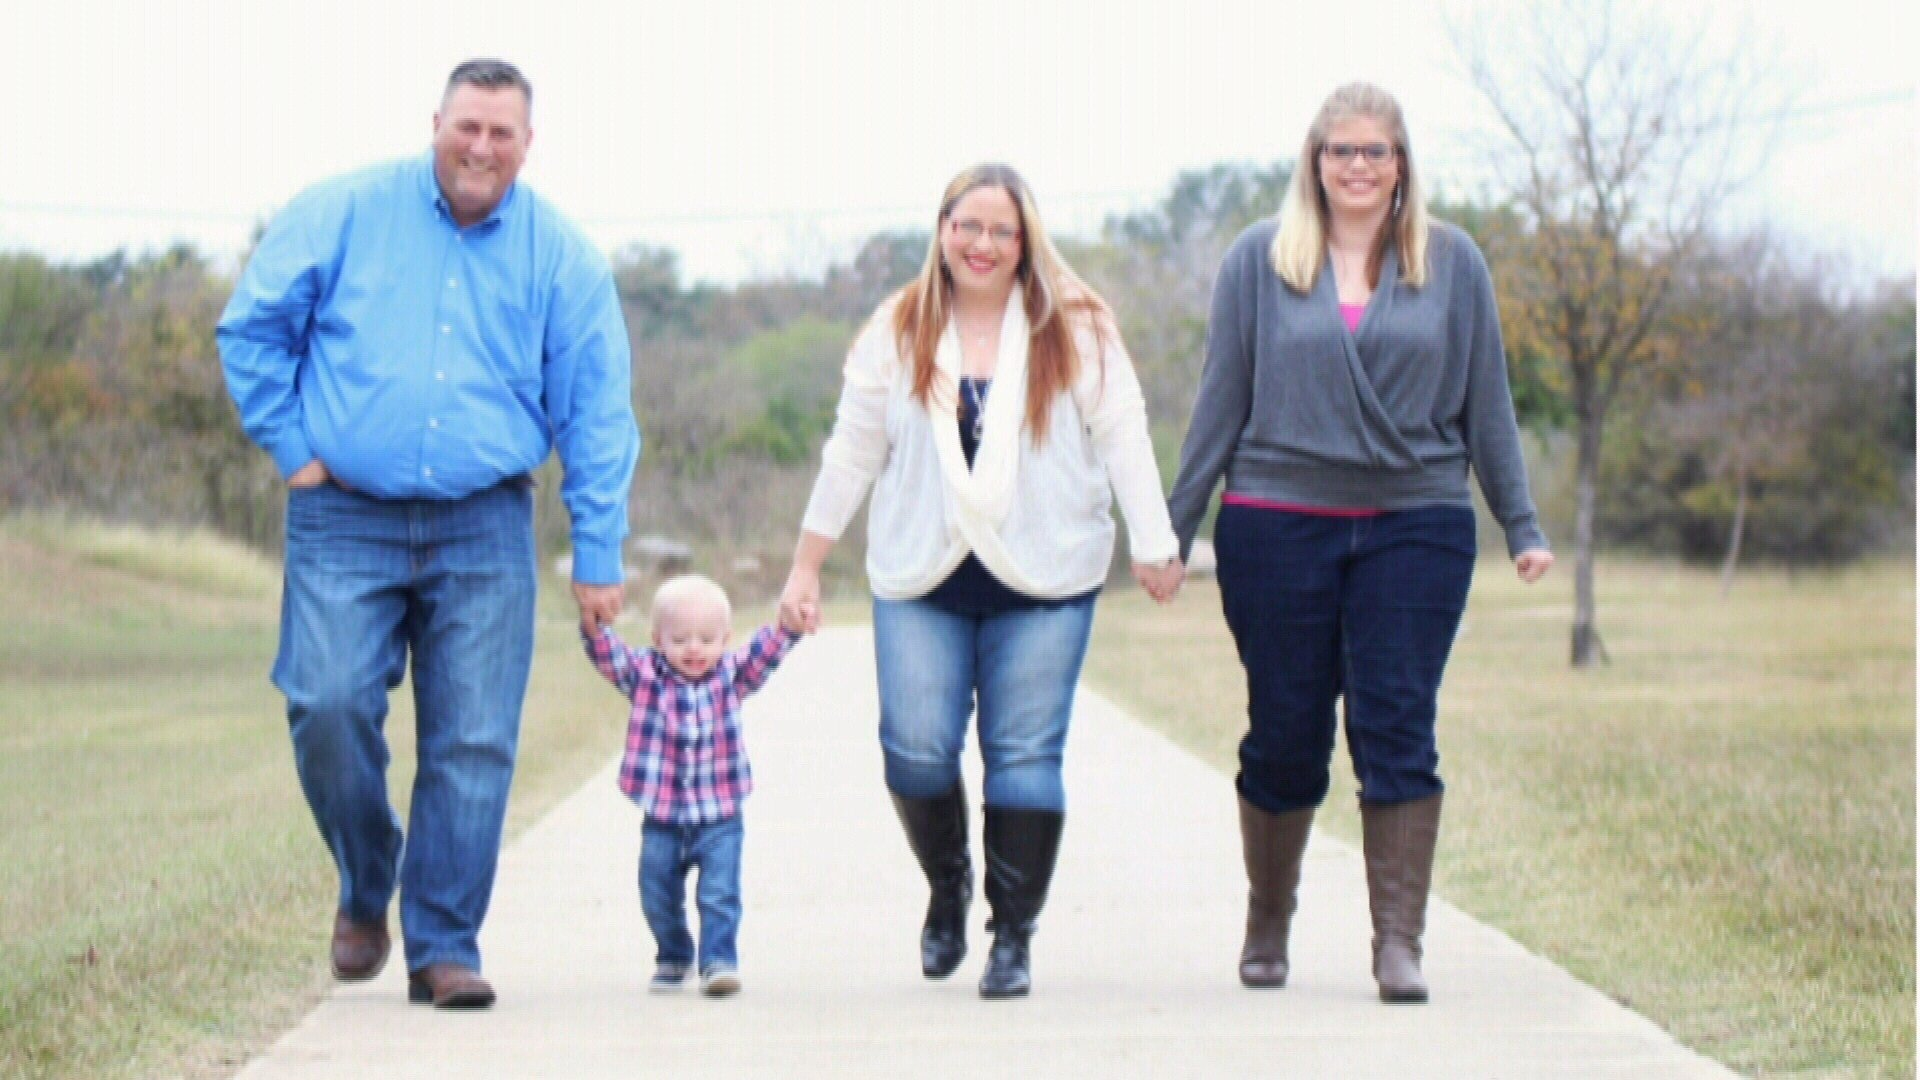 Sheriff Jim Kaelin's daughter, Trisha Crowder, lives minutes from The First Baptist Church of Sutherland Springs, and just a few houses away from Zoe and her family.